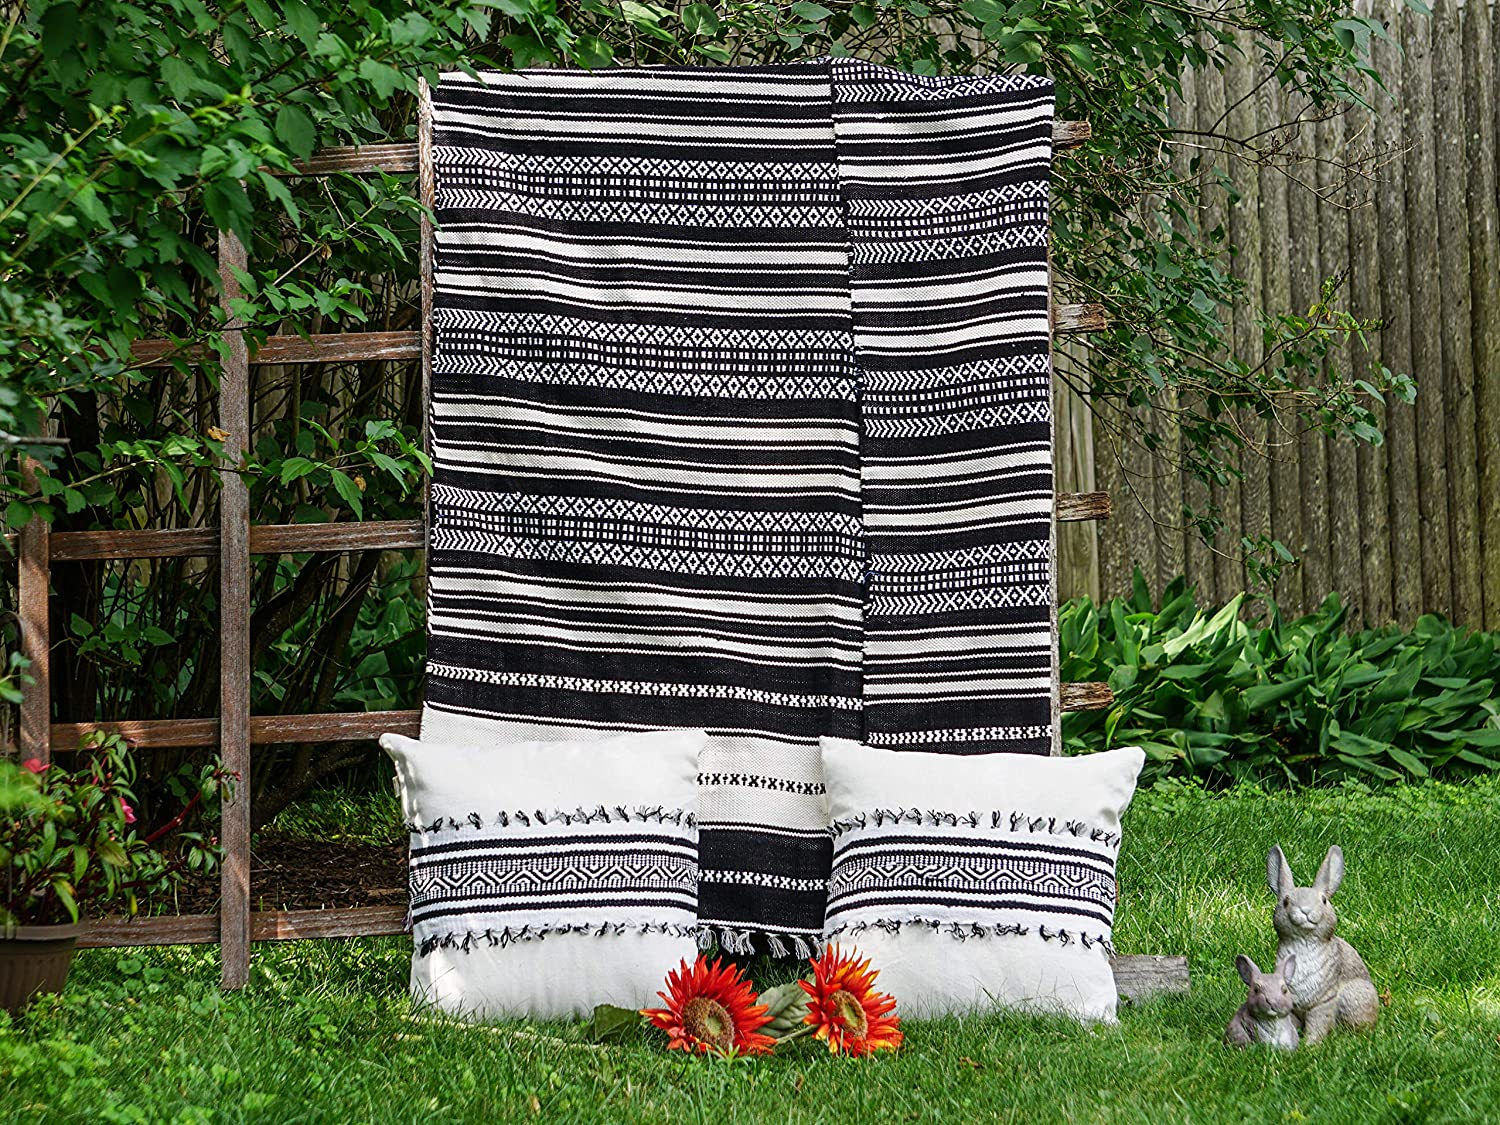 Image of Aasma's Dream Black & White Striped 3 Piece Throw Blanket Set with 2 Square Pillow Covers, 18'x18' Home and Kitchen